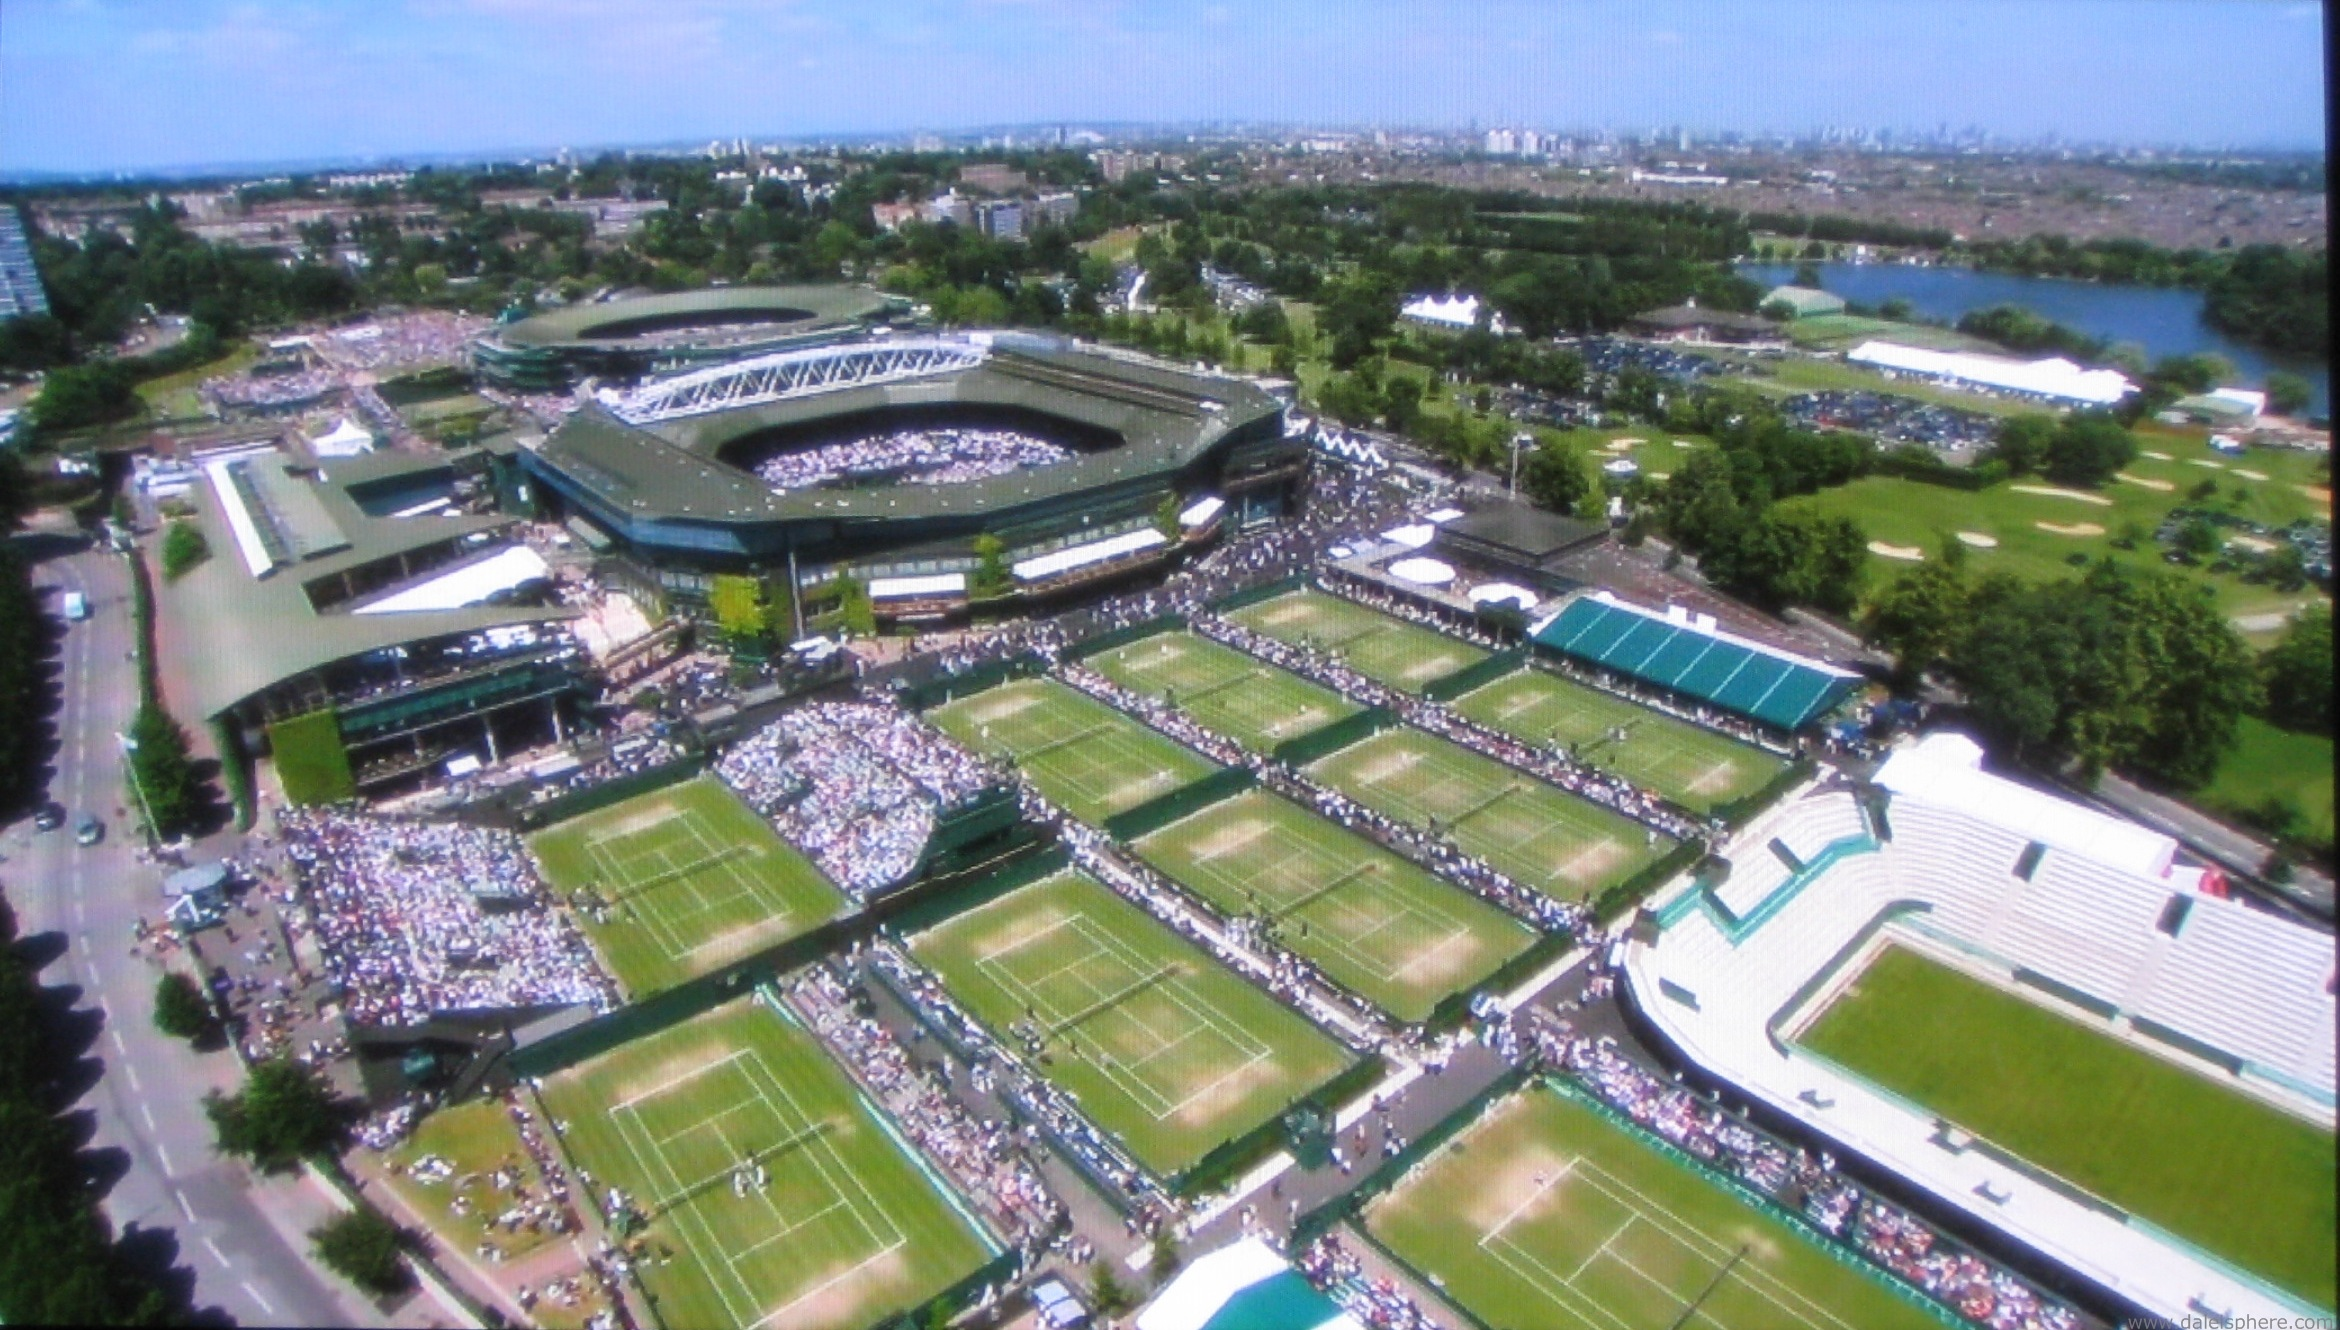 All England Lawn Tennis and Croquet Club Wimbledon Londres London Olimpiadas Olympics 2012